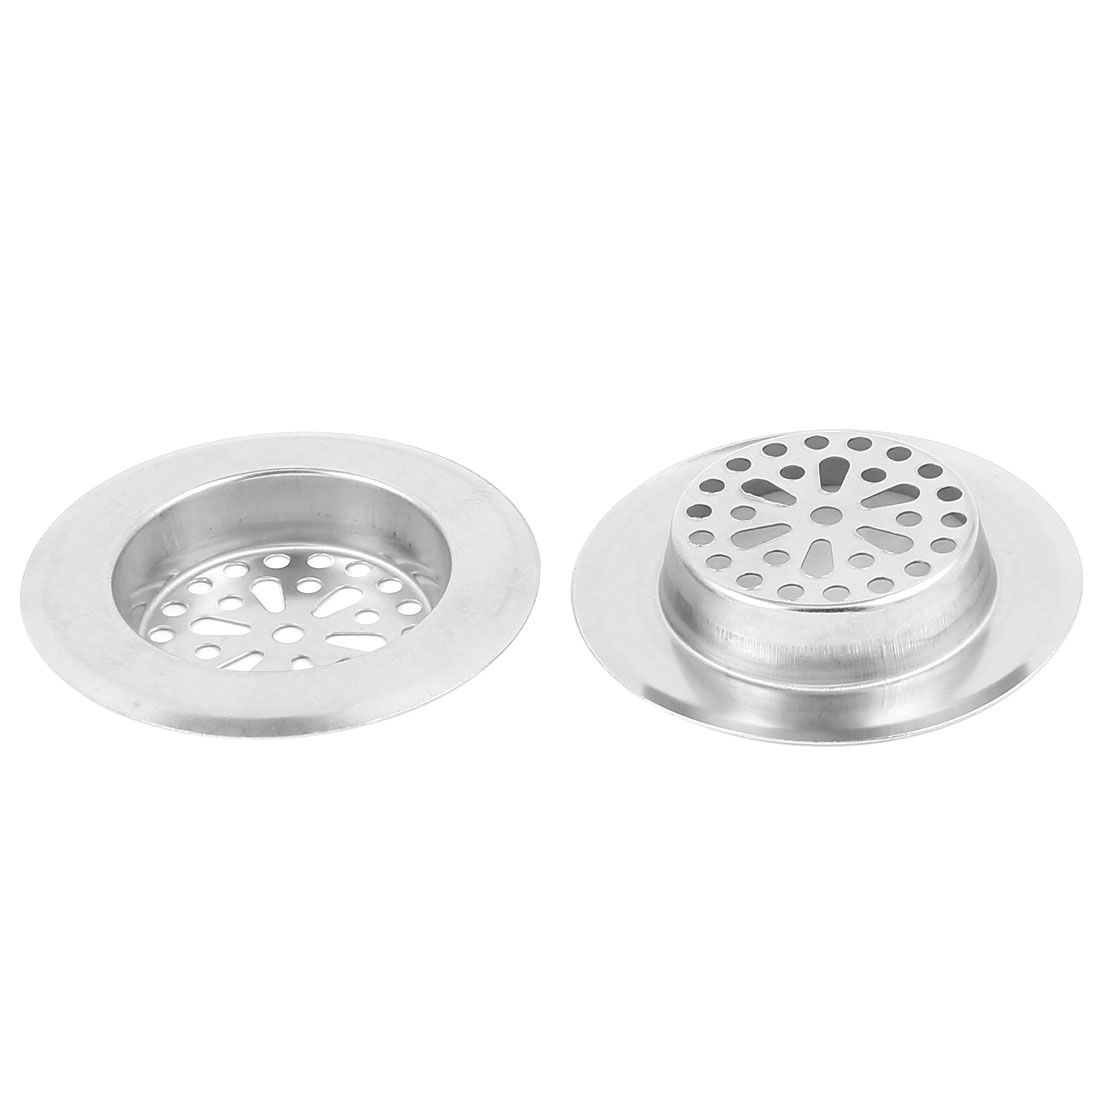 Bathroom Kitchen Stainless Steel Sink Strainer Drainer Filter Stopper 3 Inch Top Dia 2 Pcs